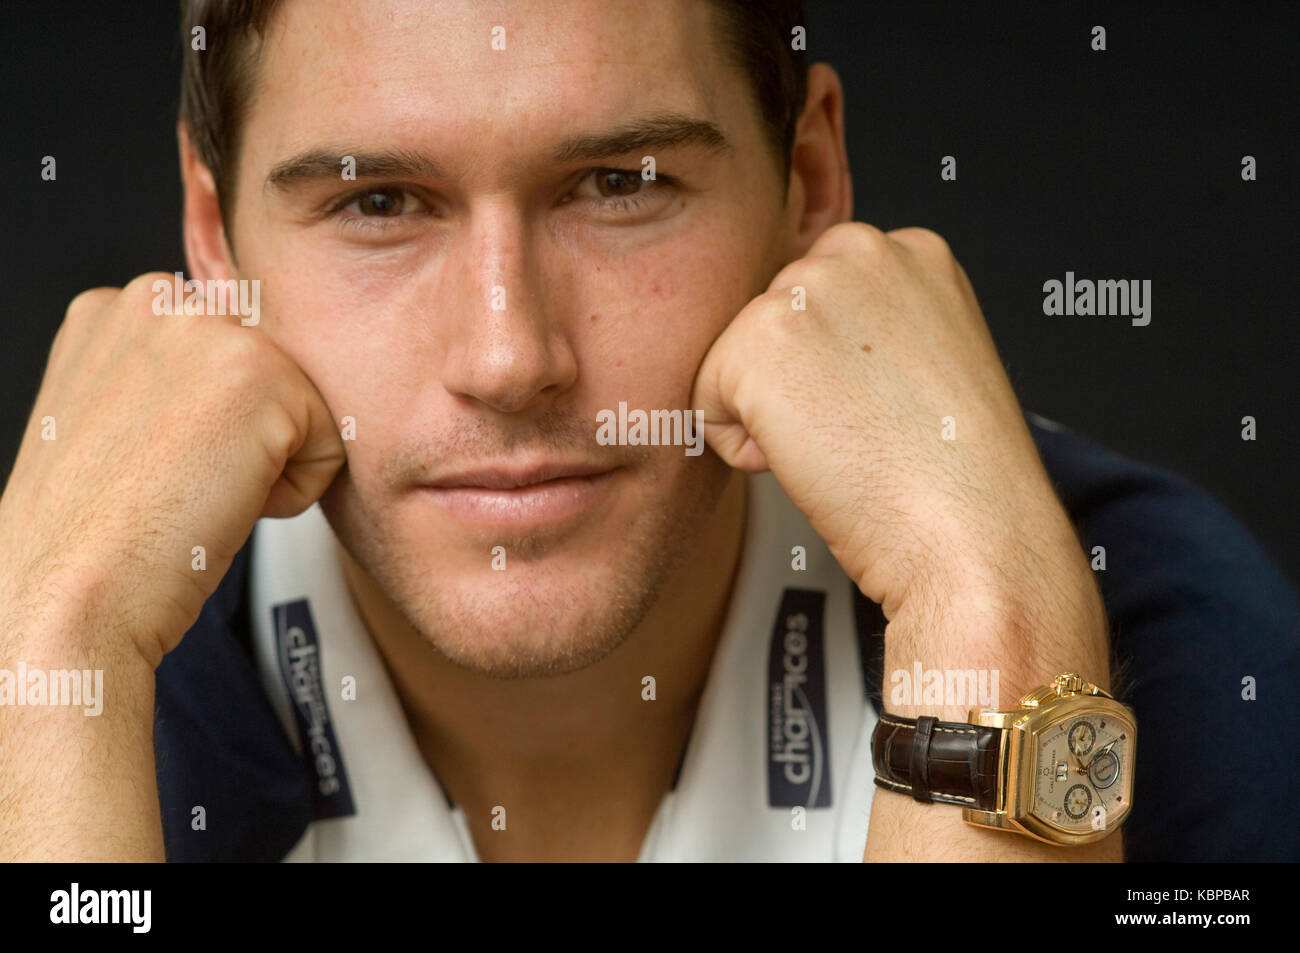 Gareth Barry, premiership football player for West Bromwich Albion - Stock Image